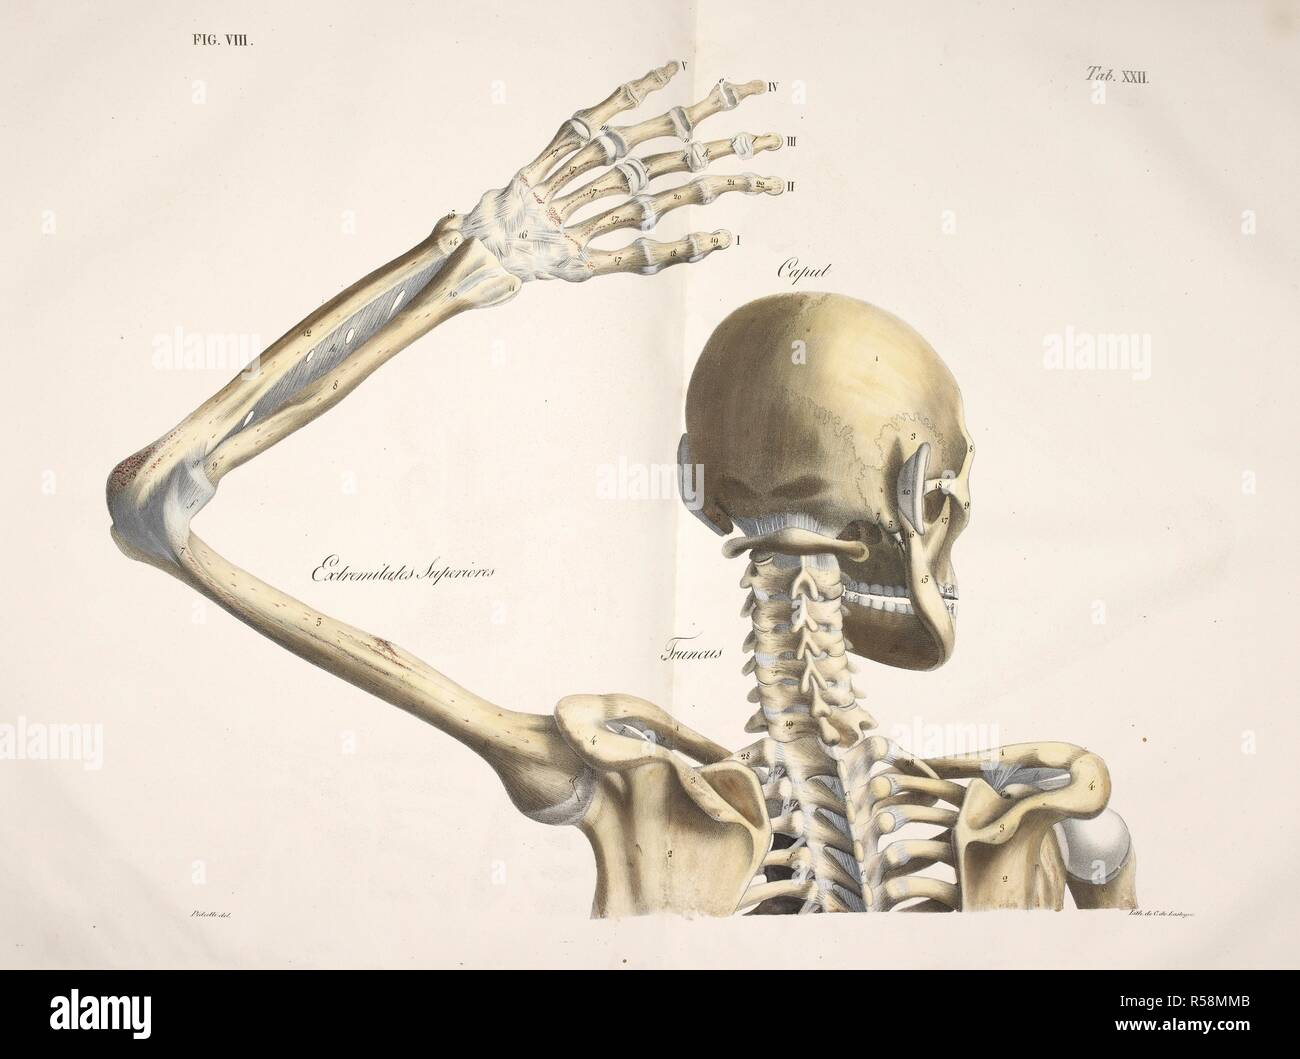 Anatomical Drawing Skeleton Bones Skull Neck Spine Shoulder Blade Arm Humerous Elbow Radius Wrist Hand And Head (caput humeri) is a large, rounded, prominence that extends medially from the bone's proximal end. https www alamy com anatomical drawing skeleton bones skull neck spine shoulder blade arm humerous elbow radius wrist hand and fingers planches anatomiques du corps humain executees dapres les dimensions naturelles paris france 1826 anatomical print of the human body with natural dimensions skeleton bones skull neck spine shoulder blade arm humerous elbow radius wrist hand and fingers antommarchi c francesco planches anatomiques du corps humain executees dapres les dimensions naturelles accompagnees dun texte explicatif publiees par le cte de lasteyrie image226999931 html